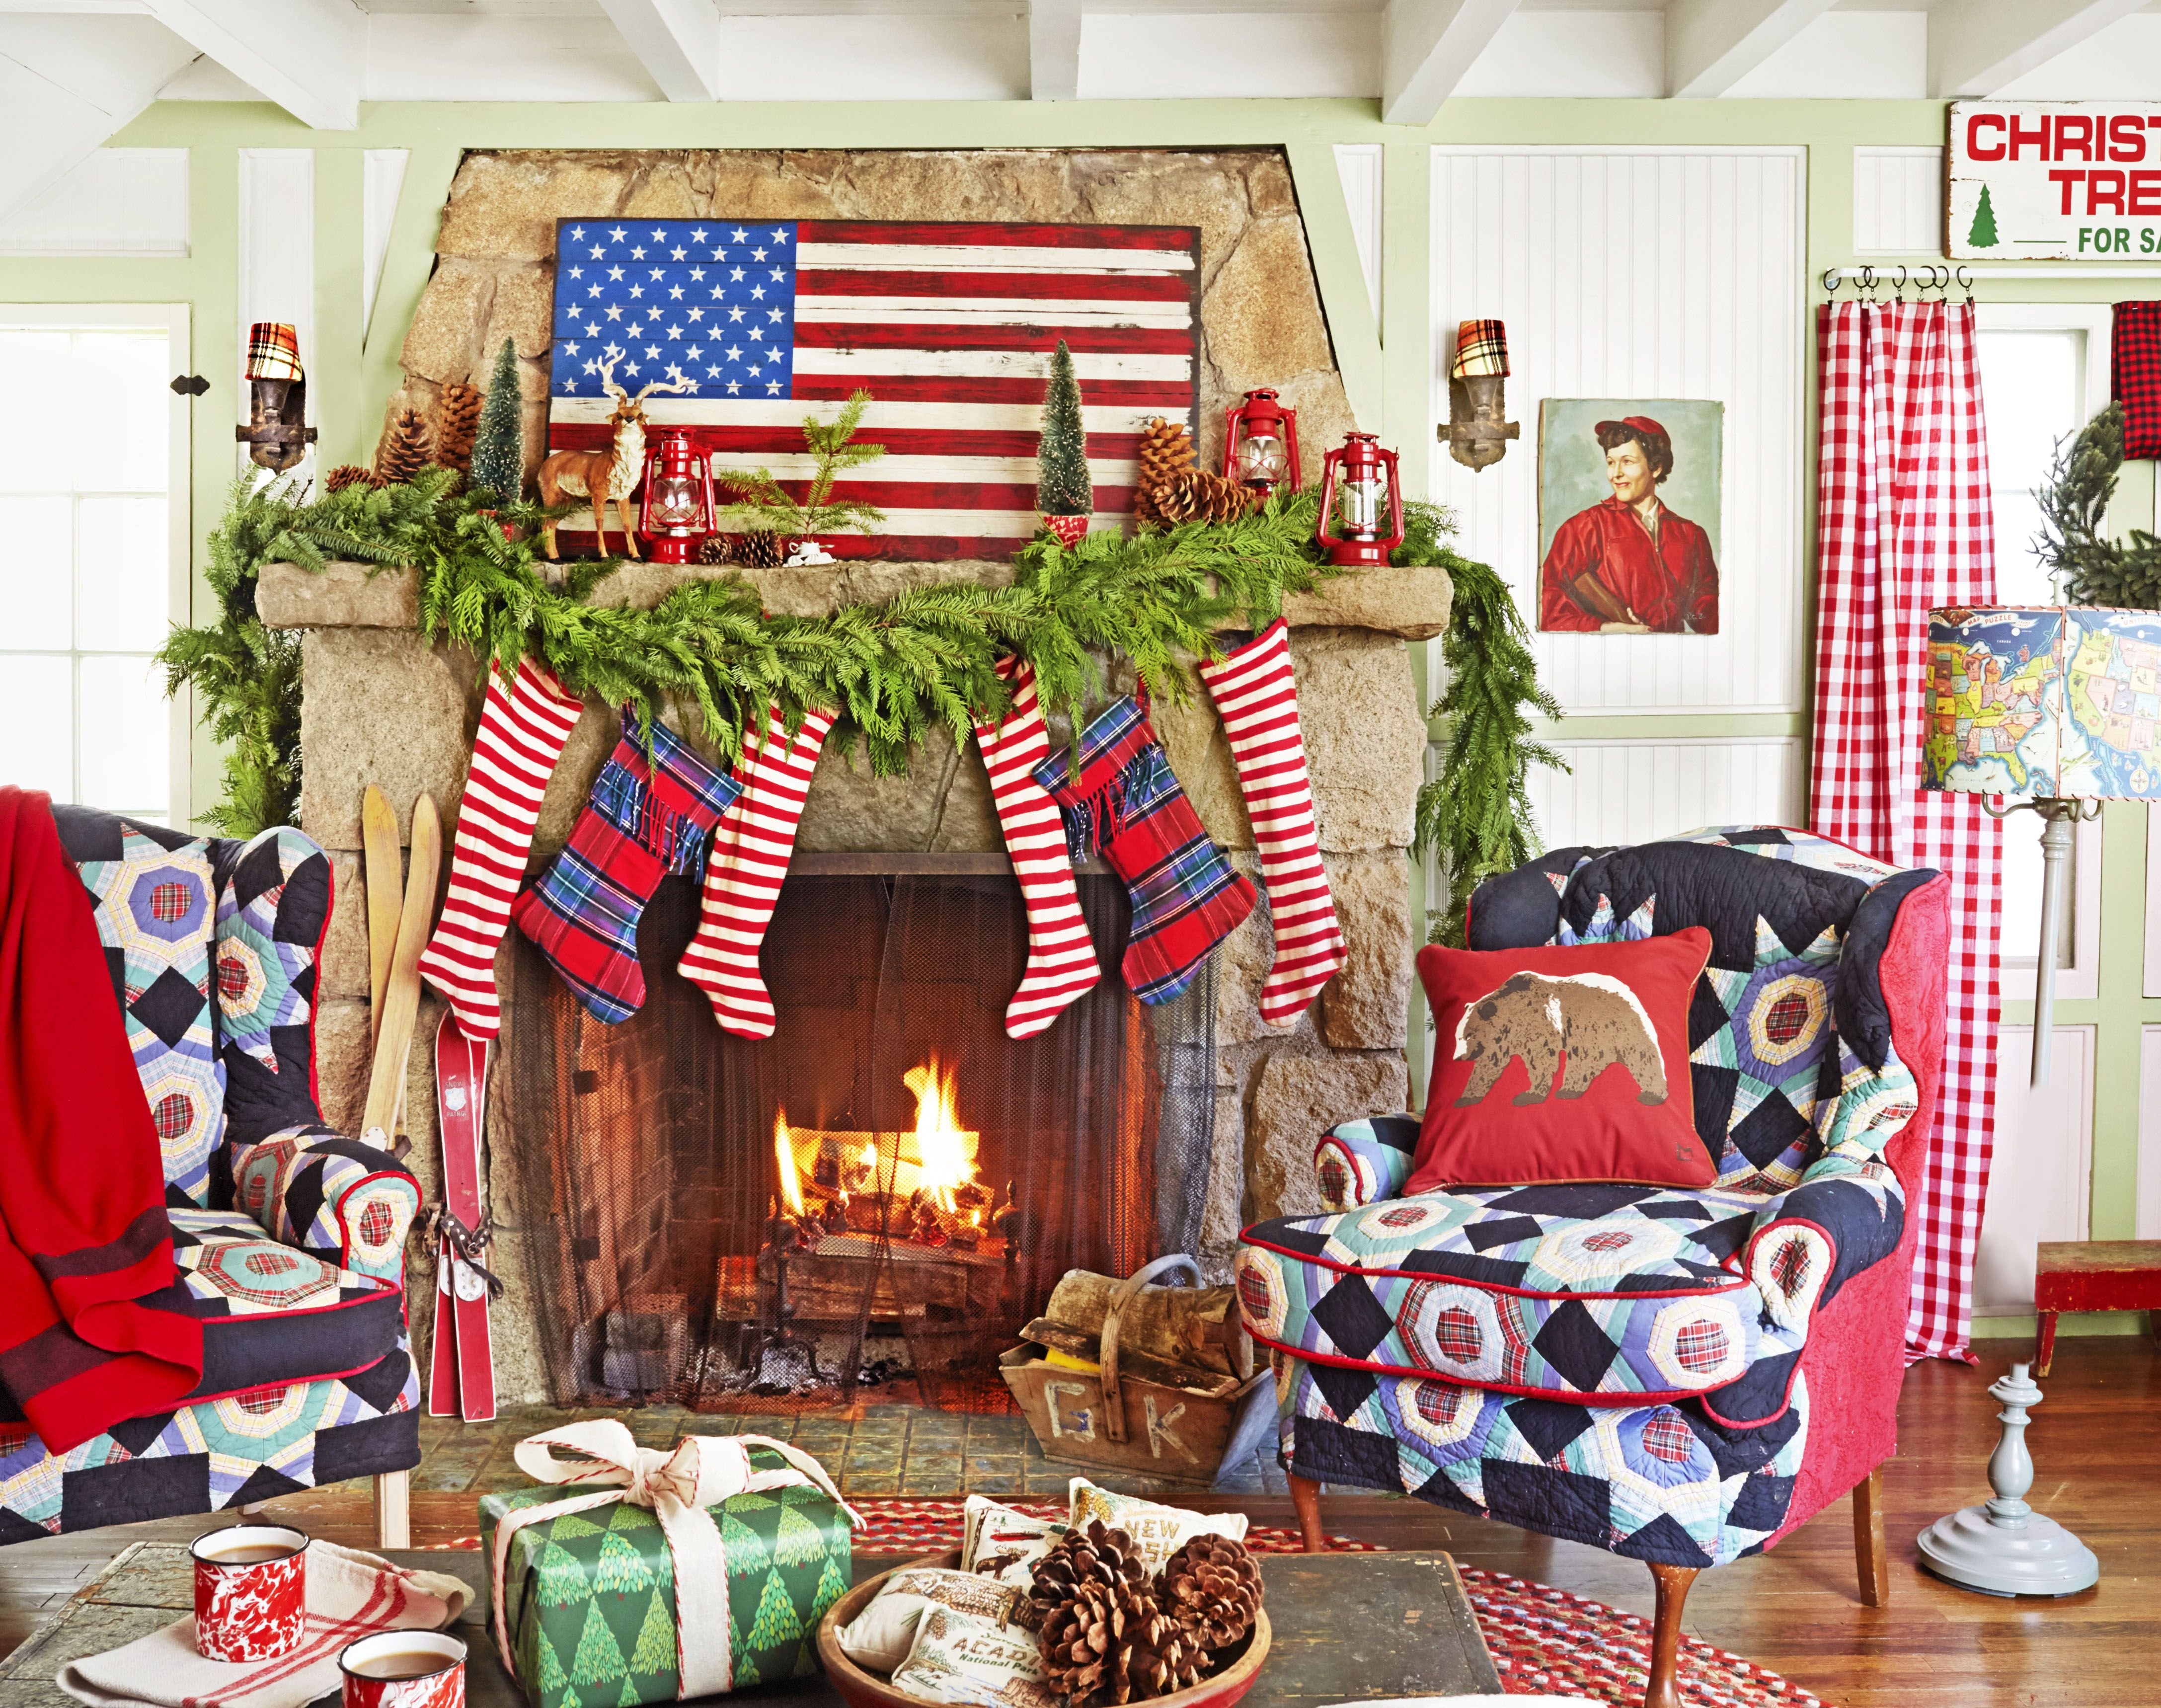 Best Place For Christmas Decorations 110 Country Christmas Decorations Holiday Decorating Ideas 2018